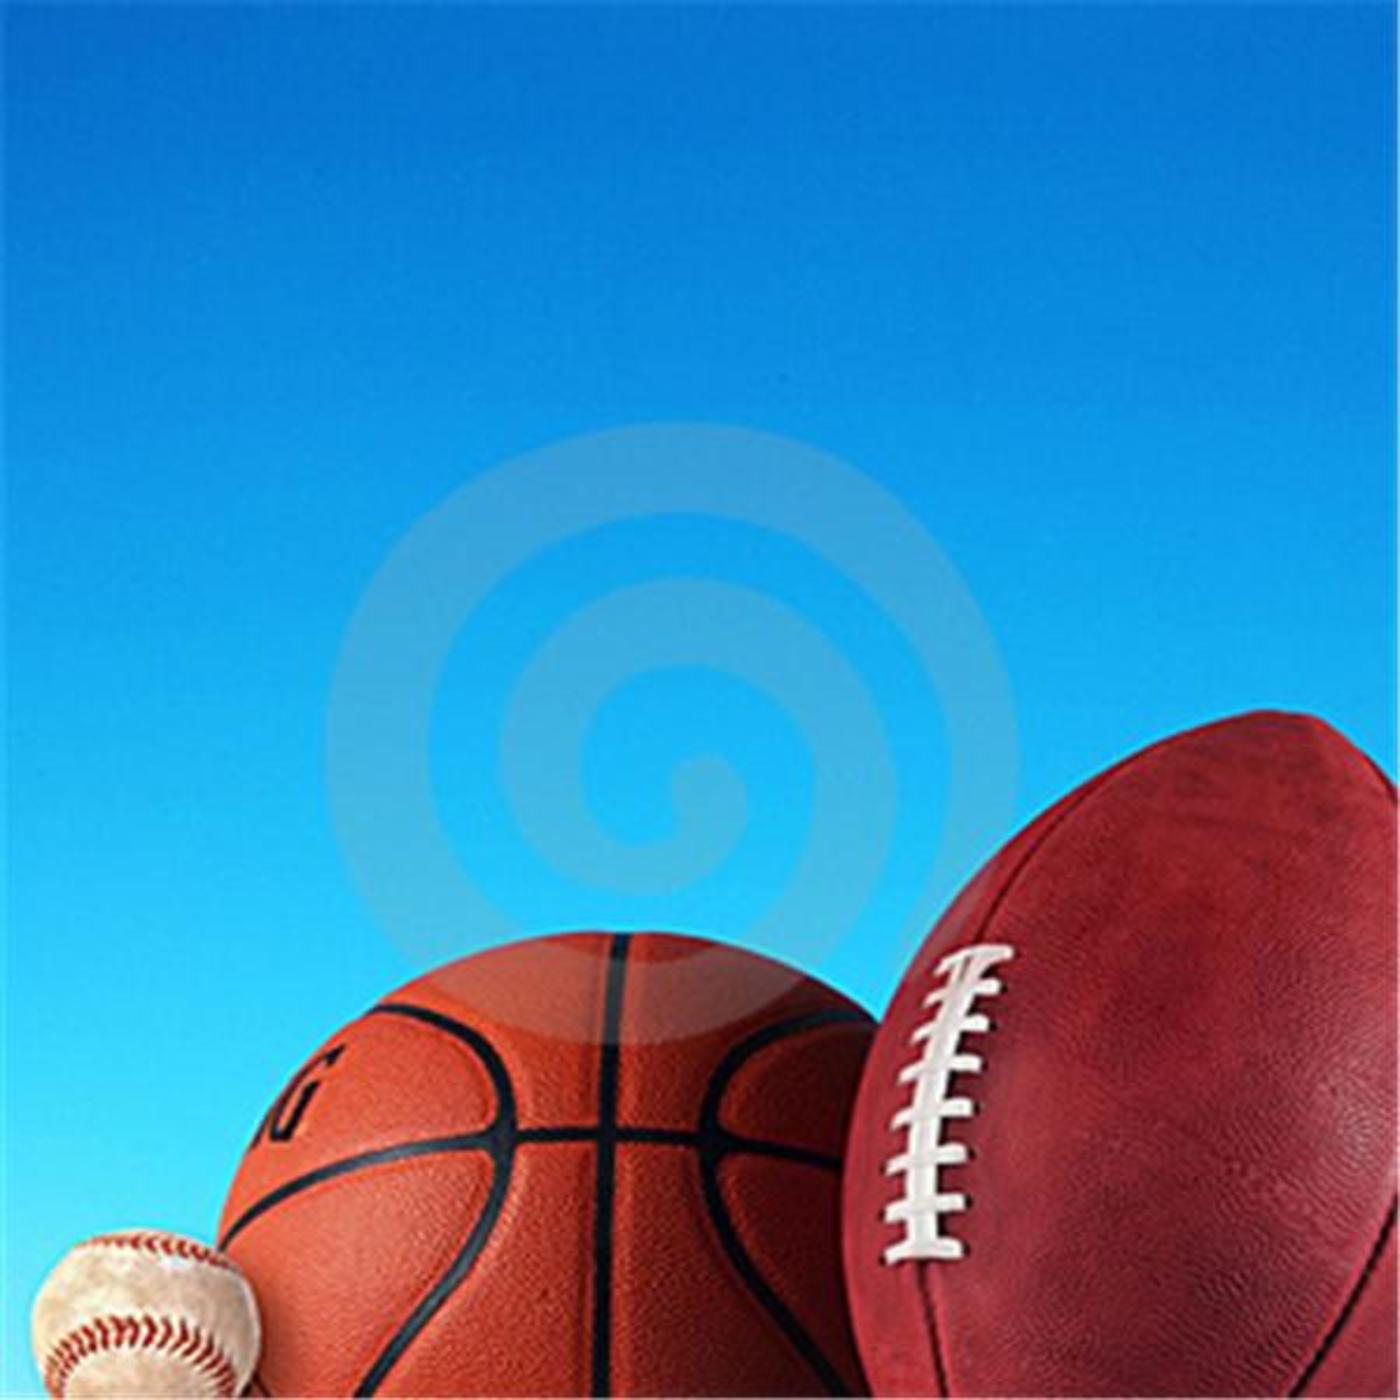 Sports with Balls Show